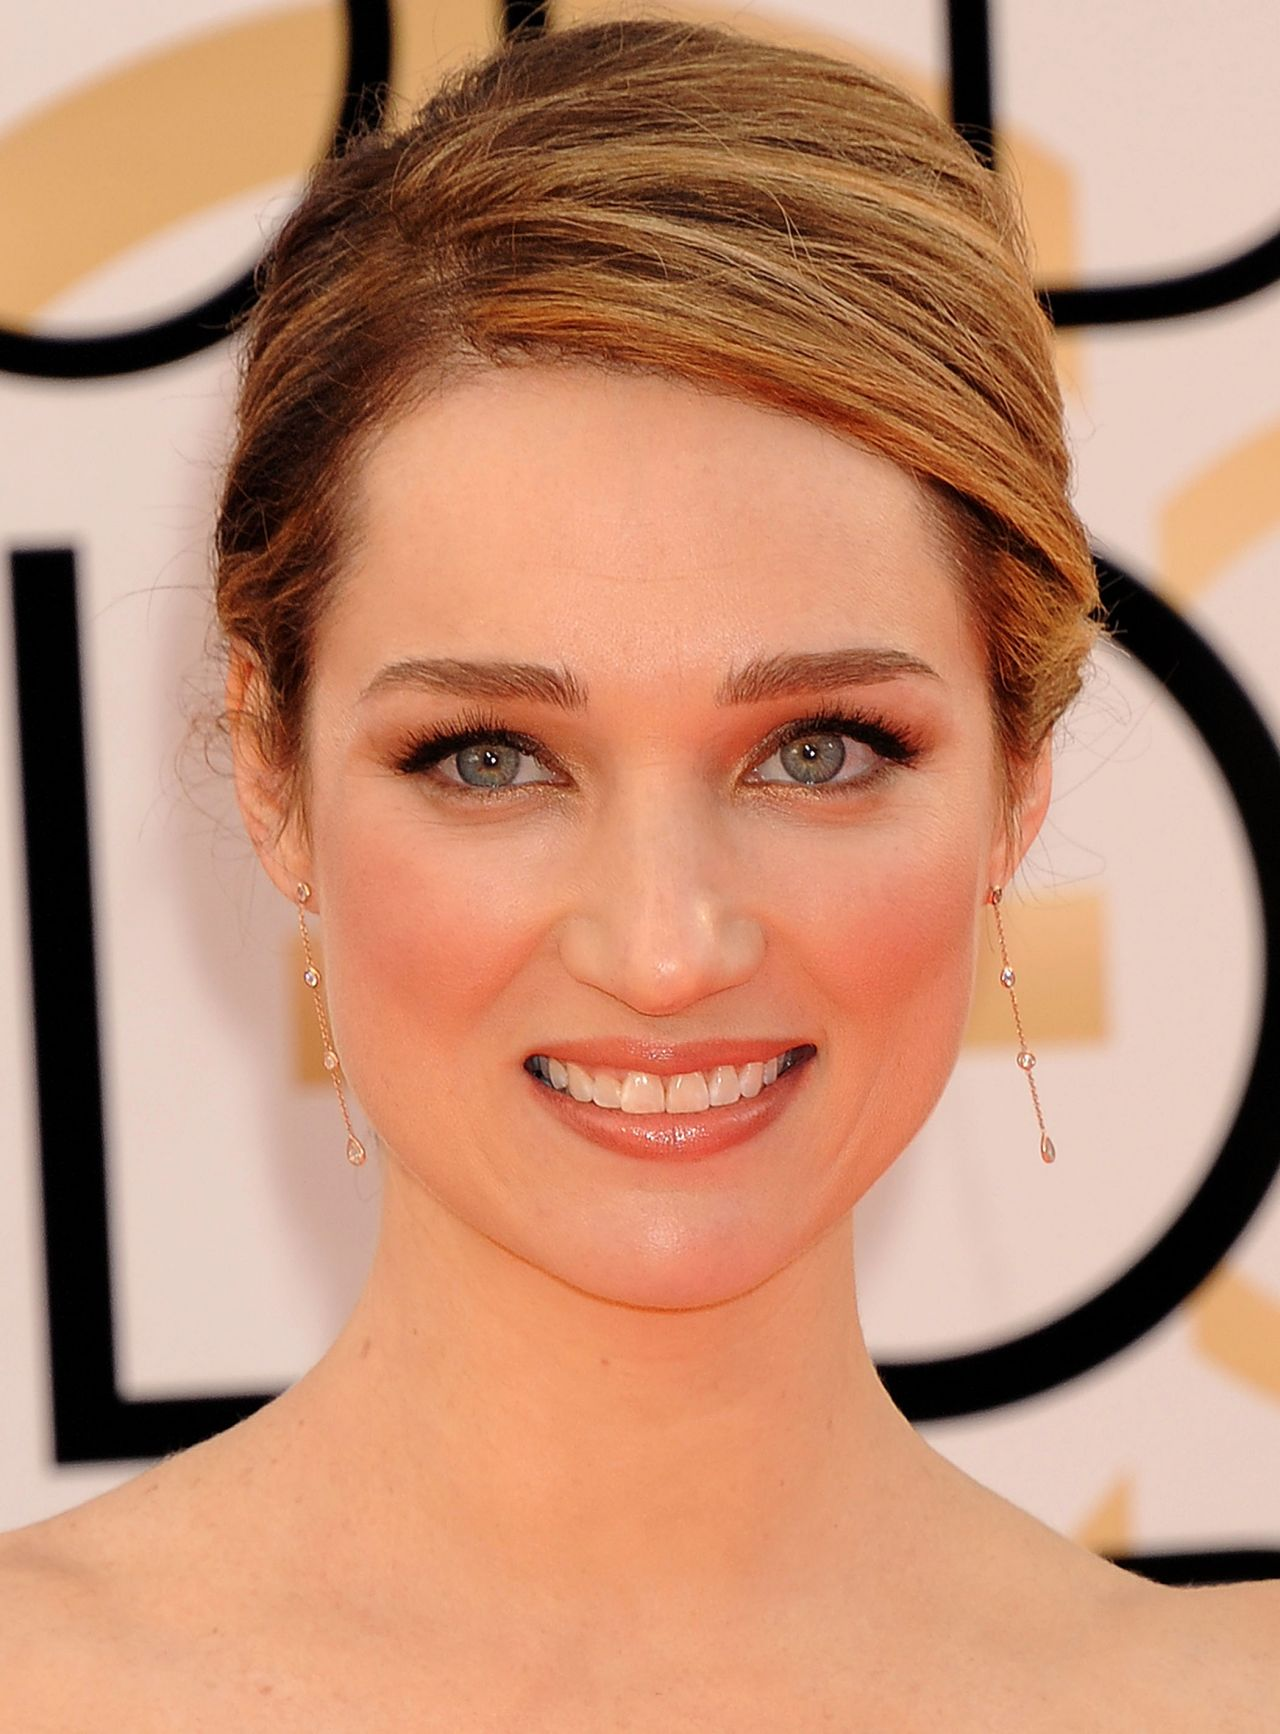 kristen connolly instagram